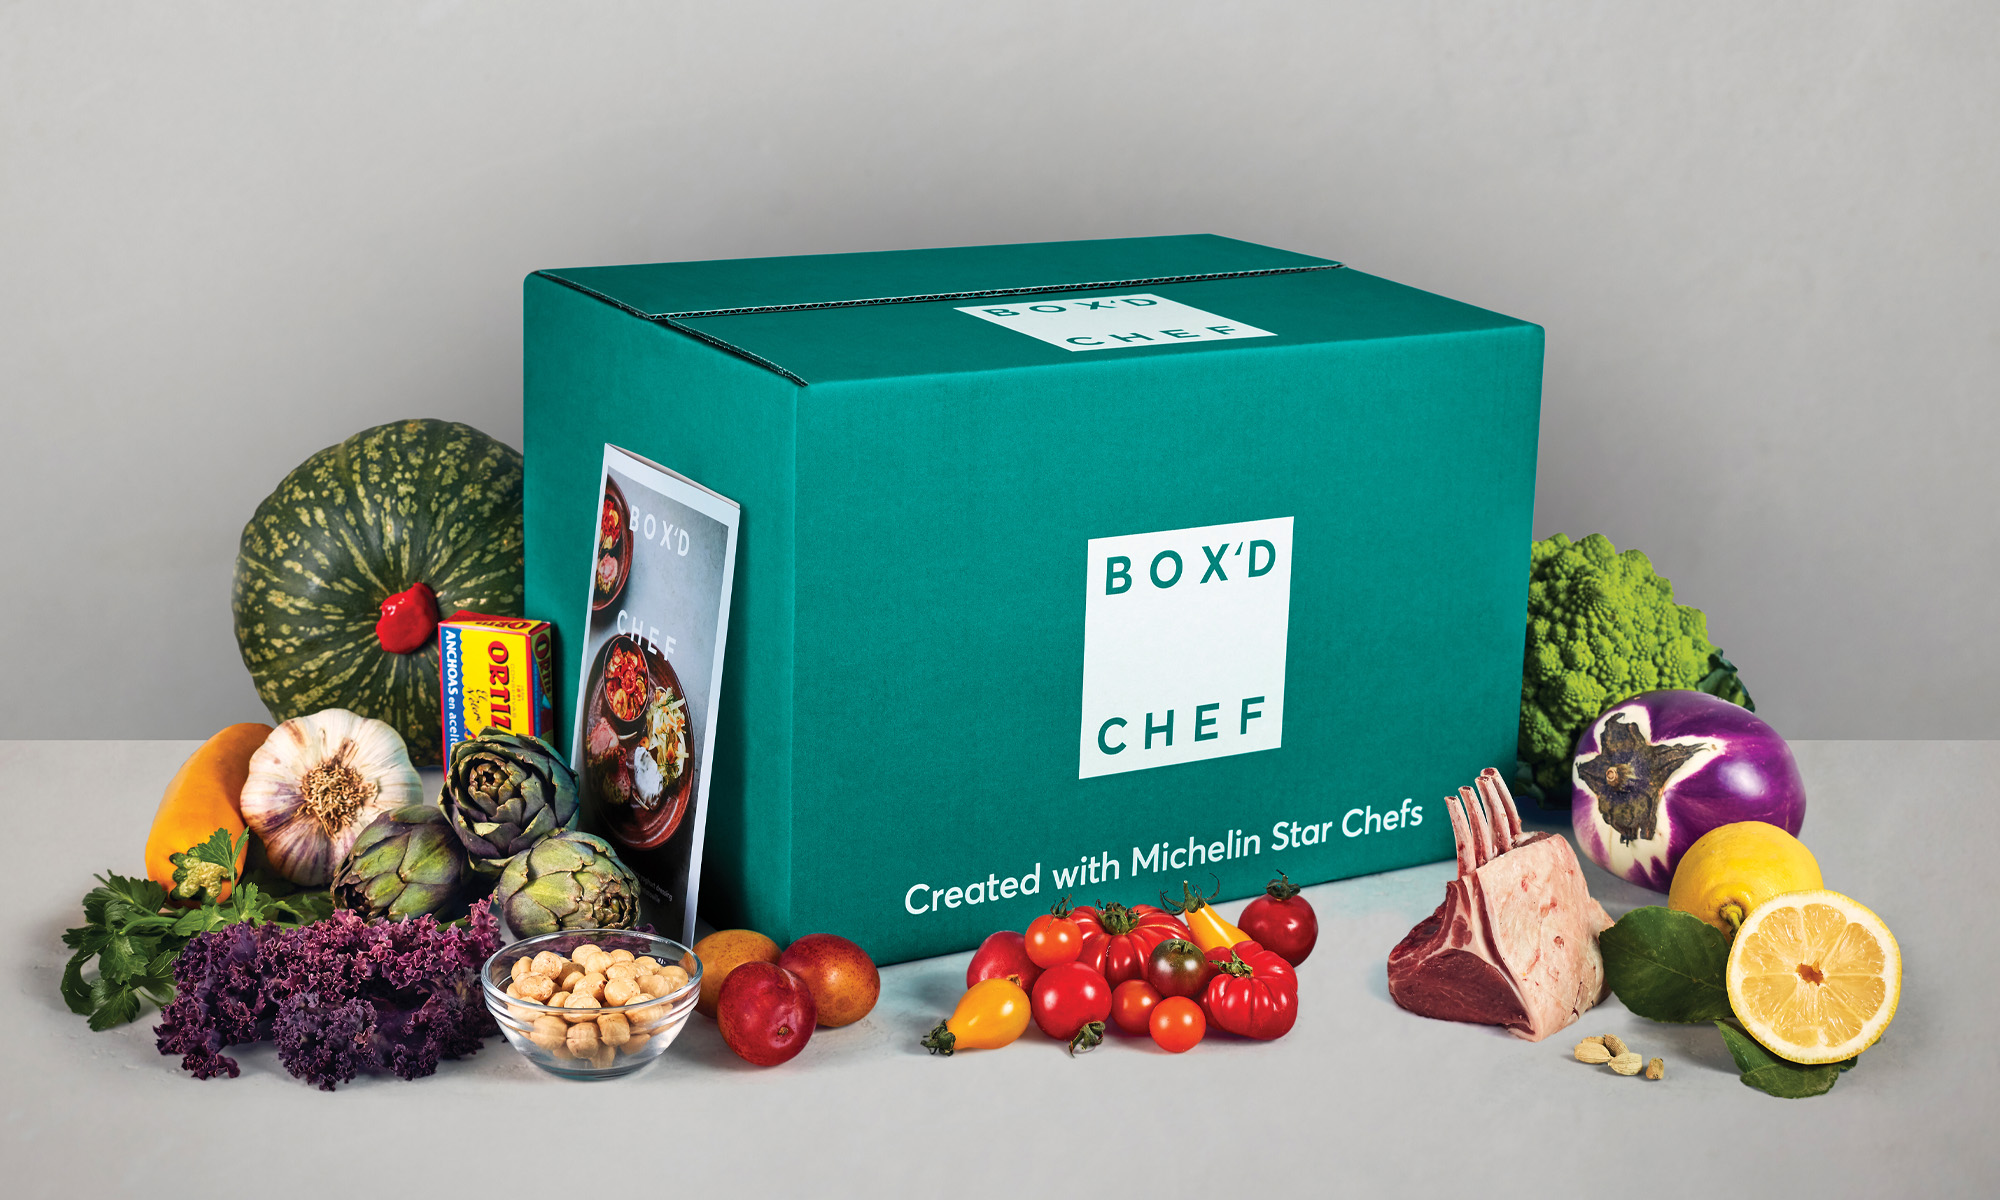 NotOnSunday-Boxd-Chef-Branding-Box-Packaging-2000×1200